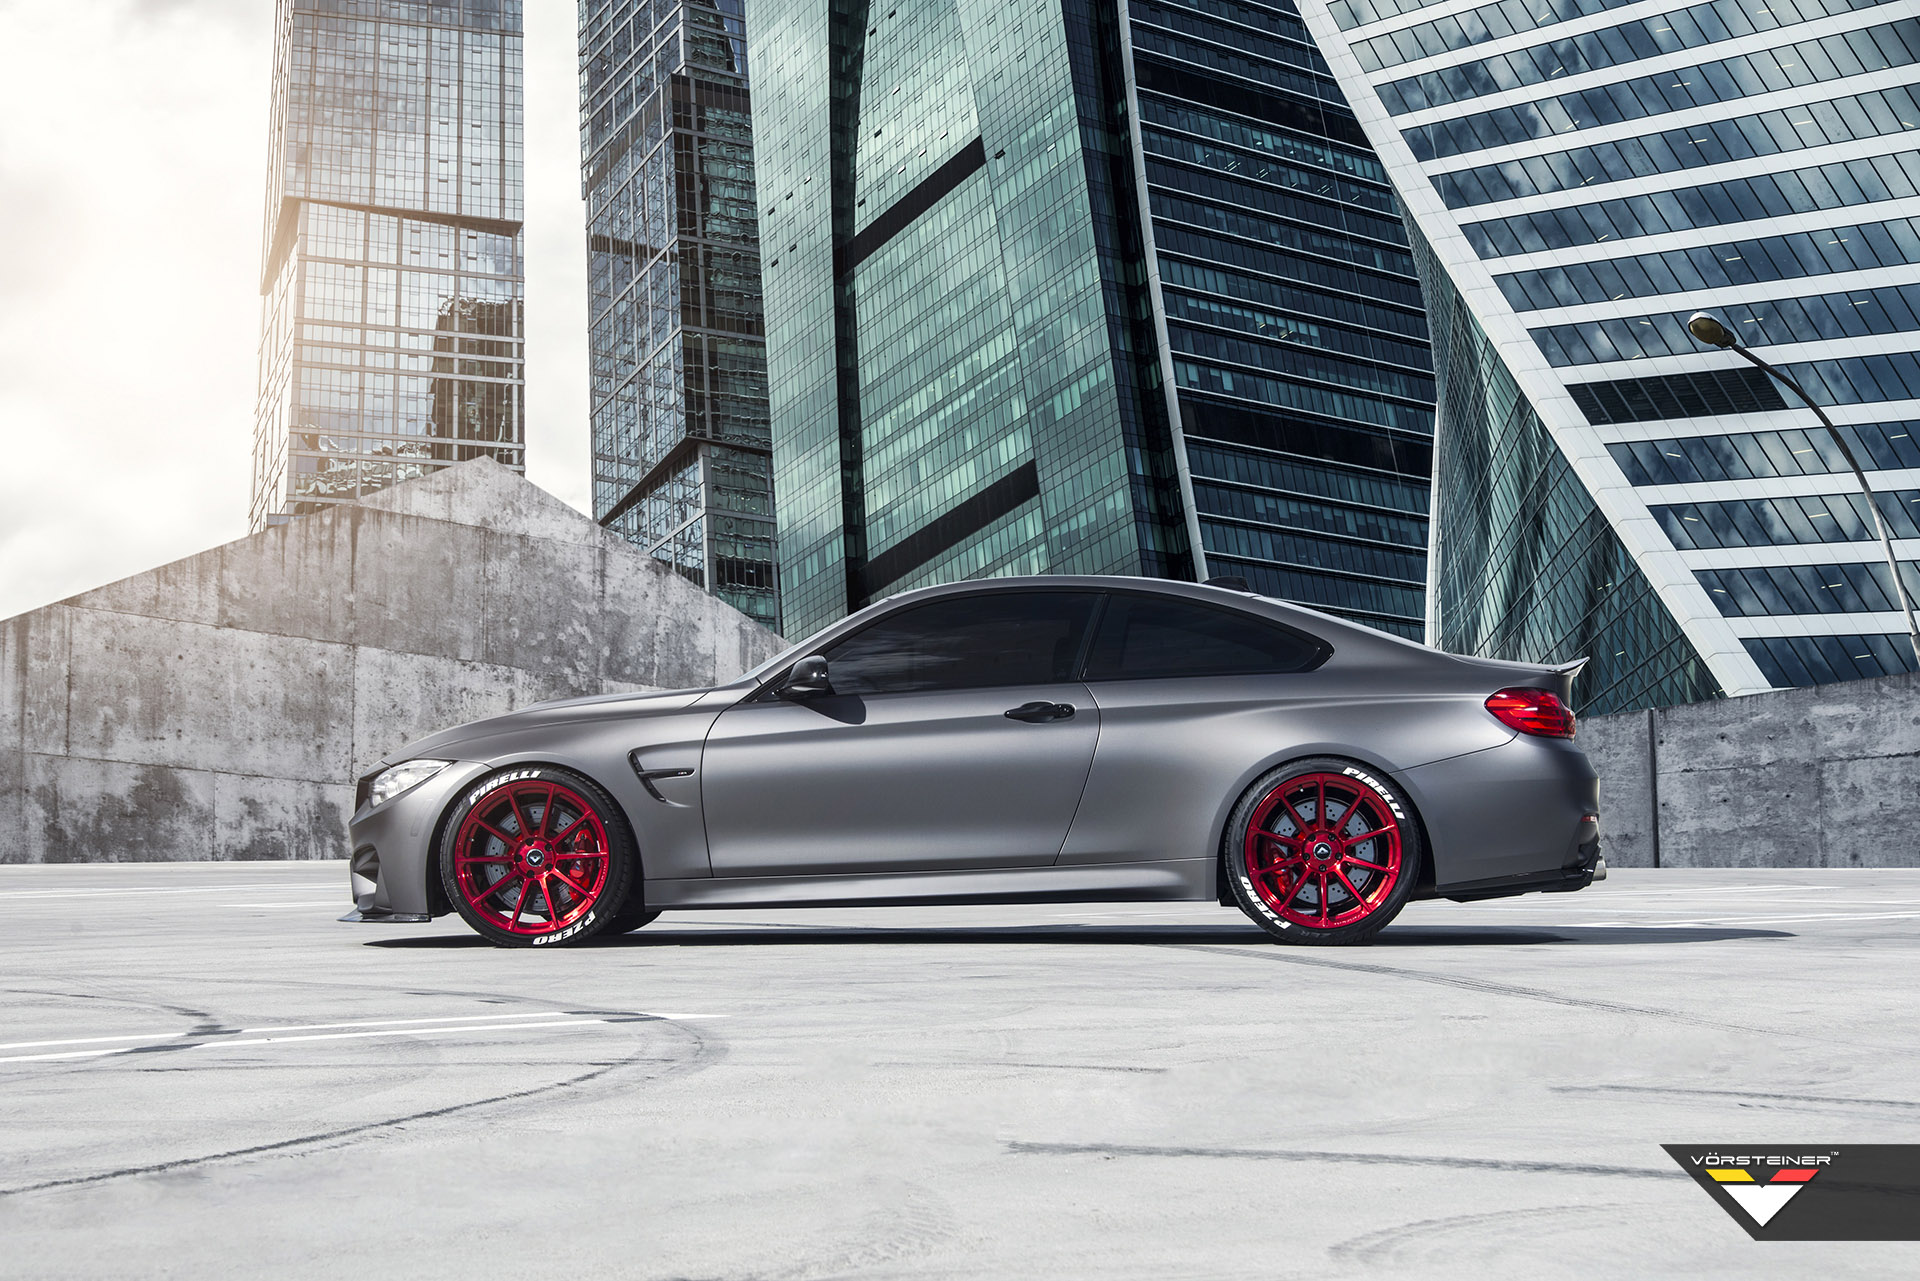 Vorsteiner Shows Off With Bmw M4 F8x In Frozen Gray